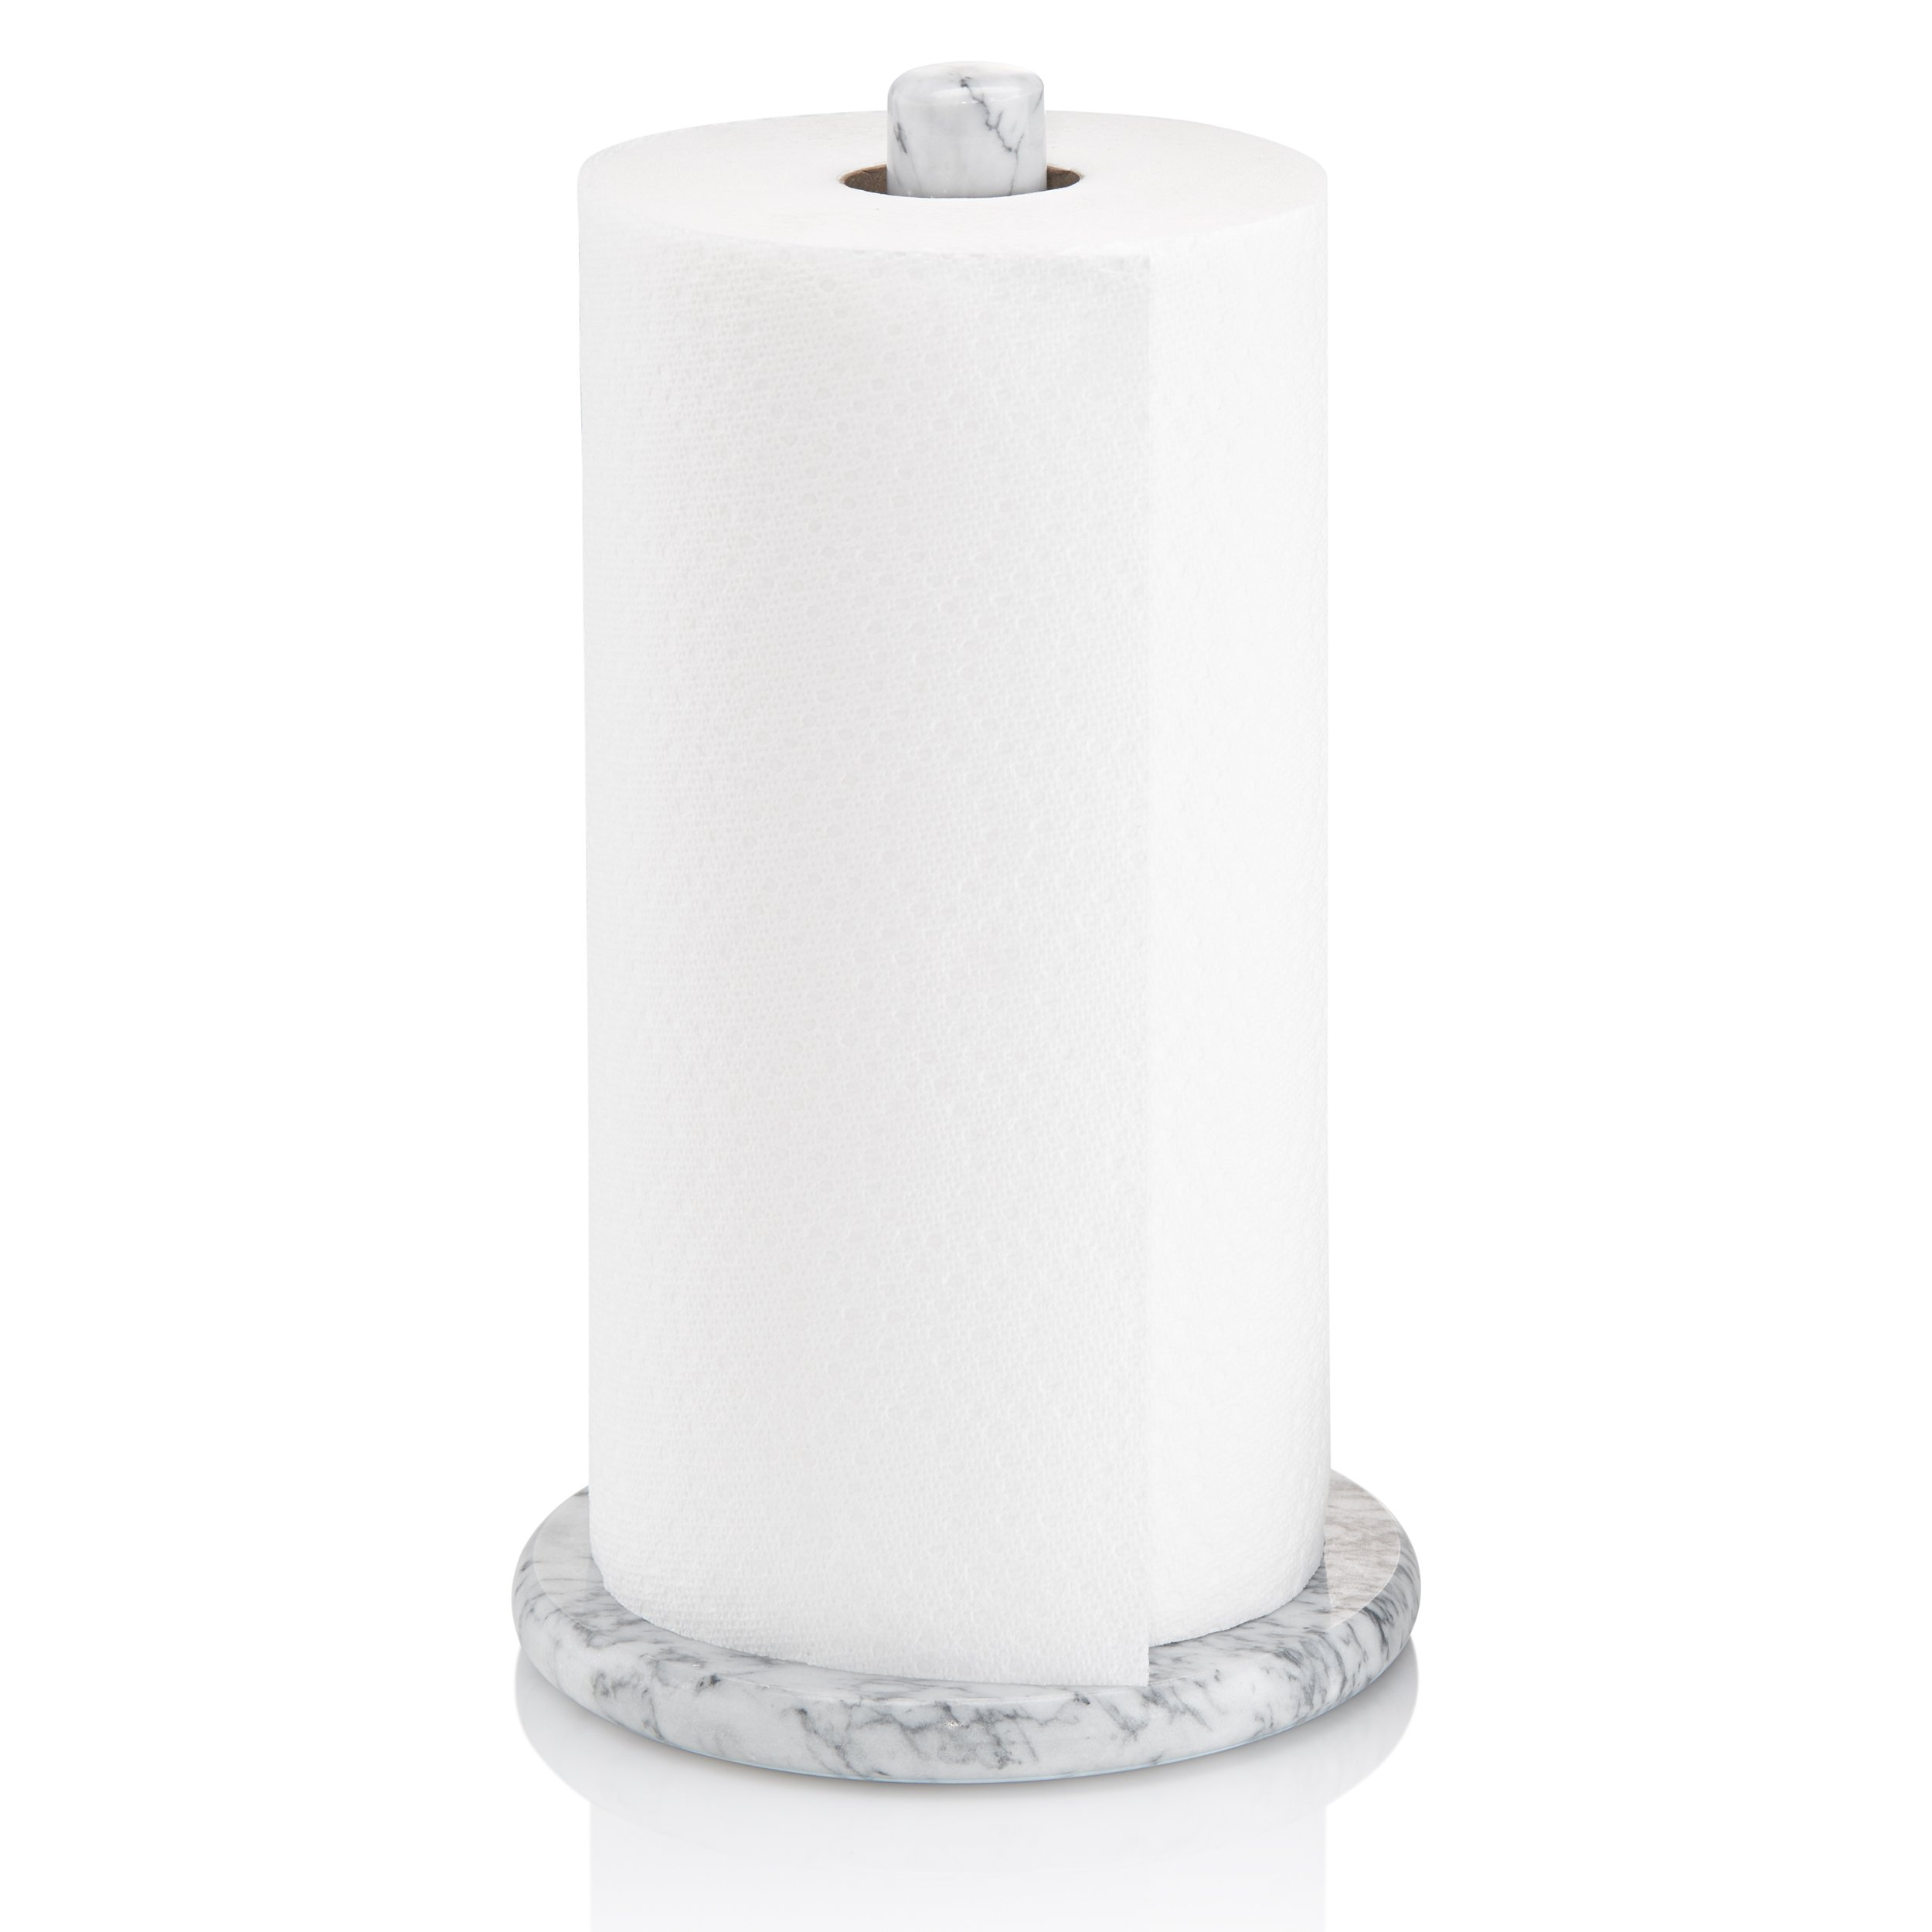 Artland 10522 Towel Holder, Marble